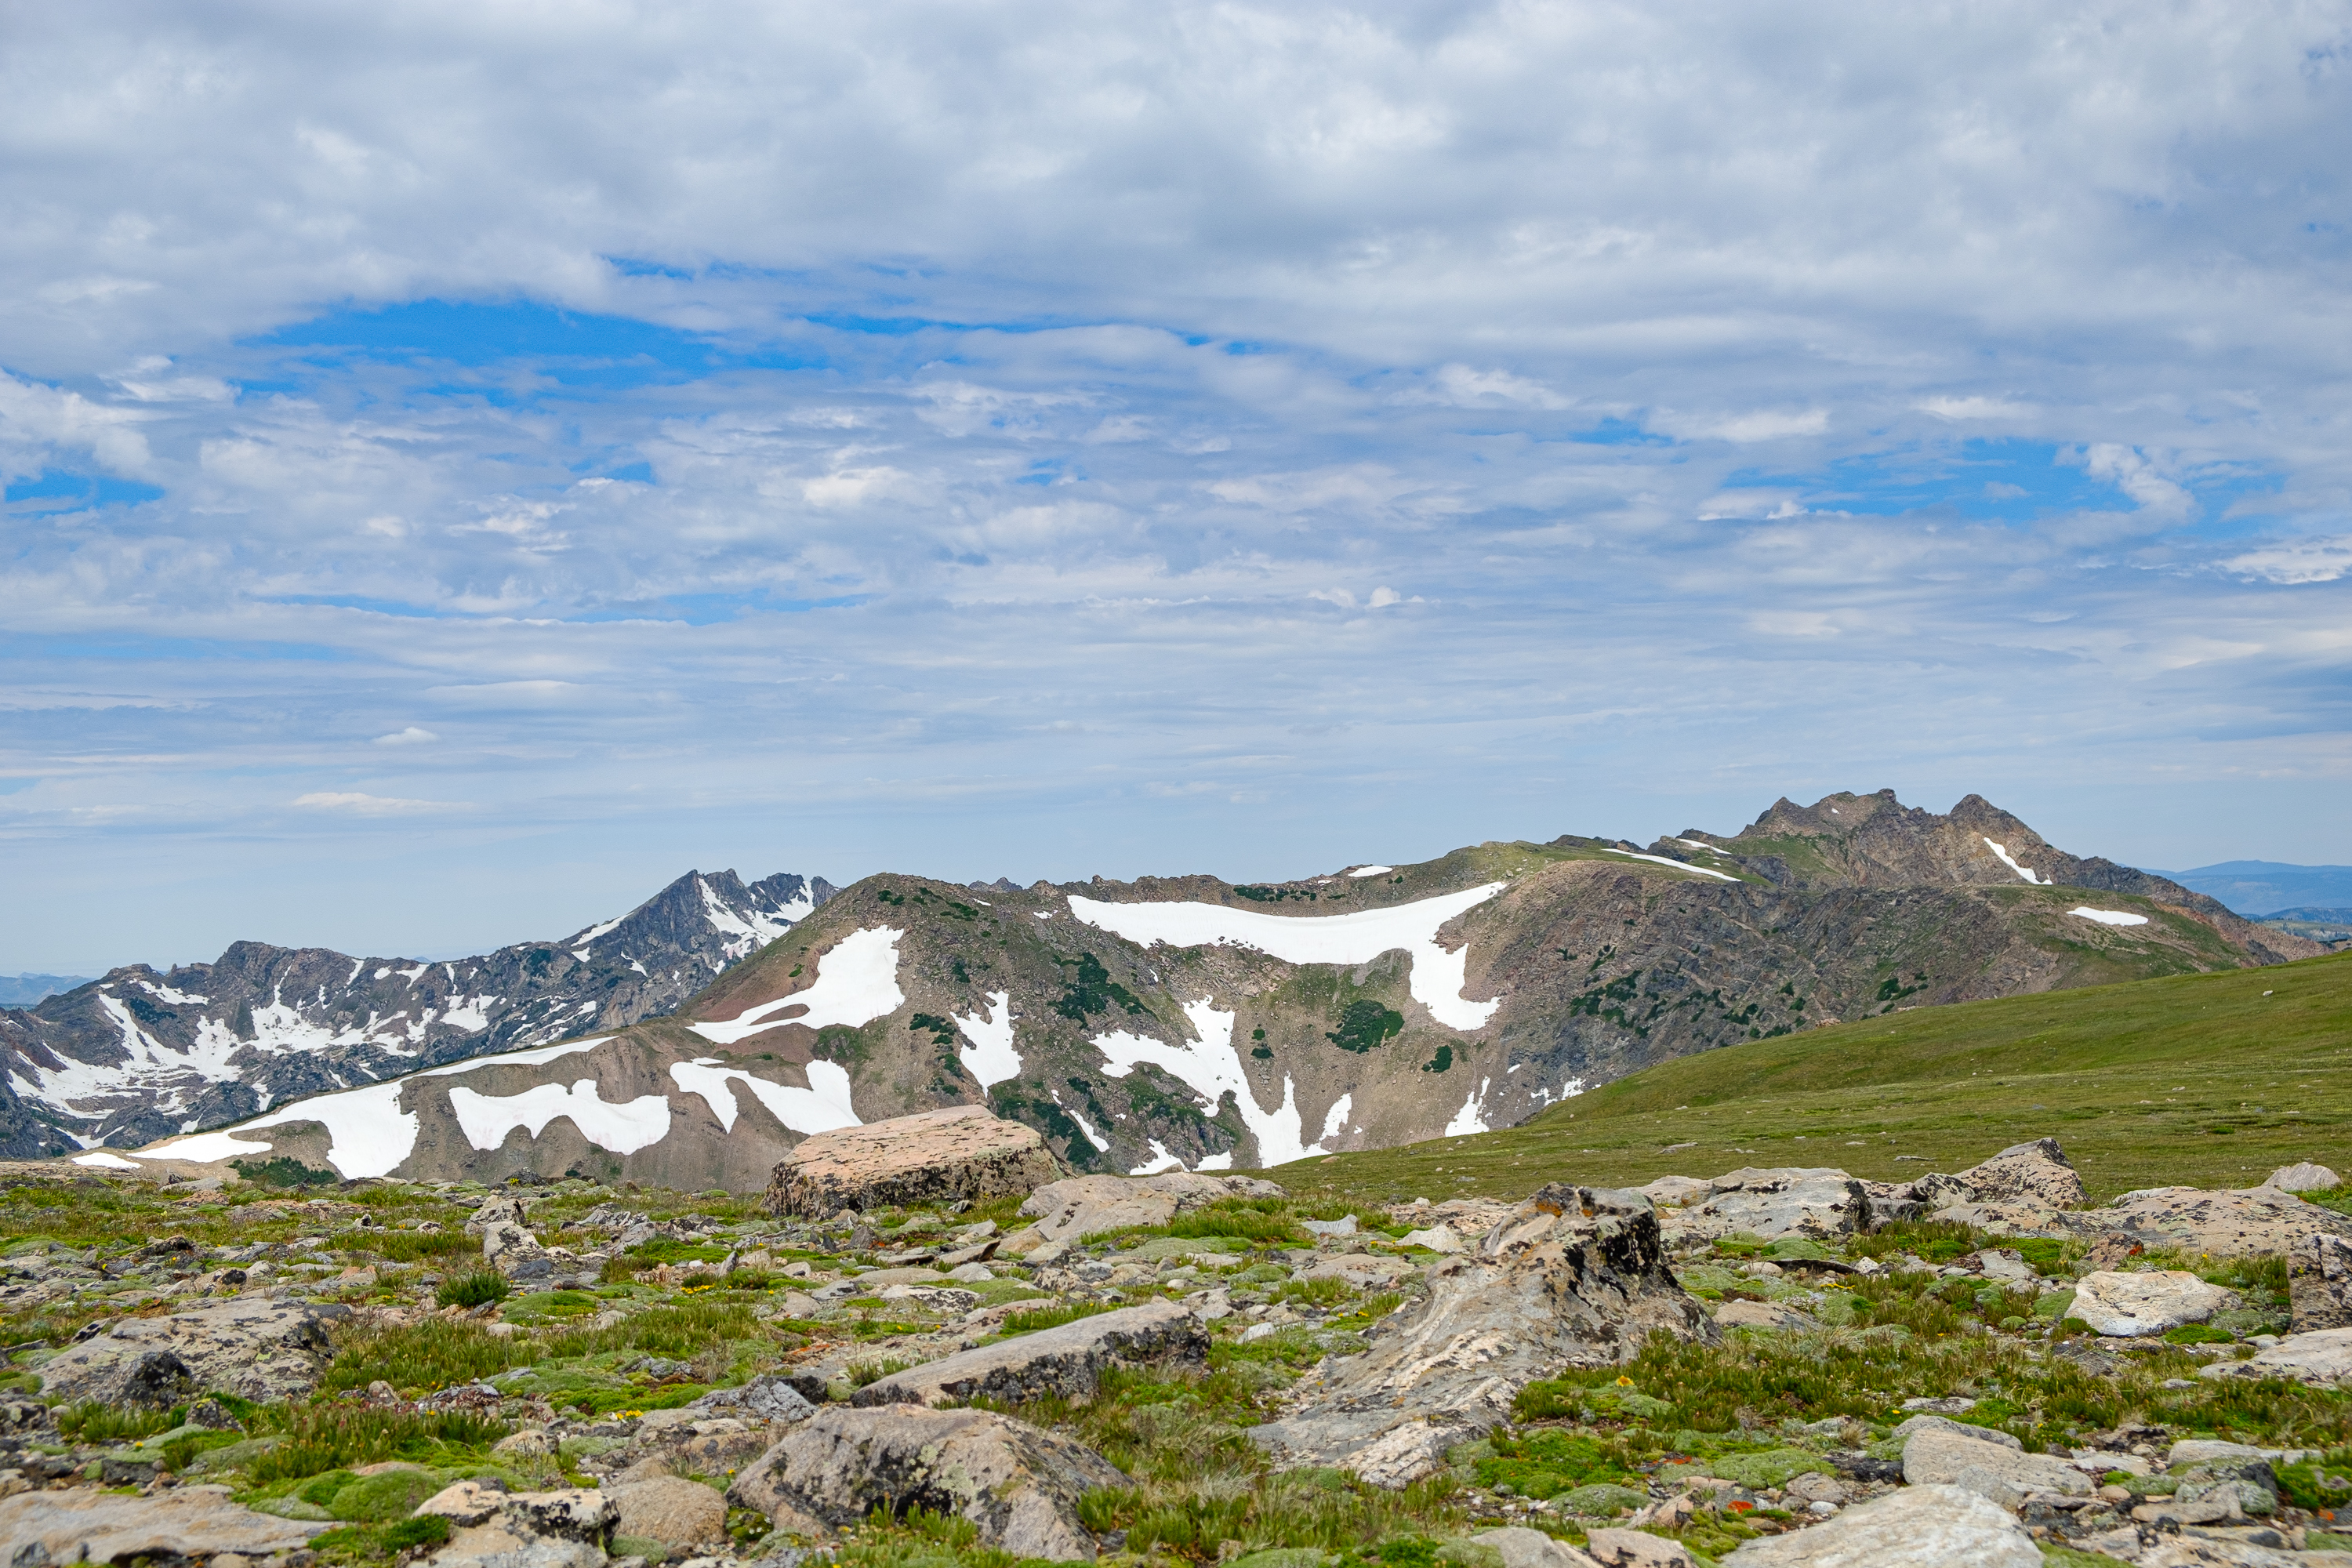 Big Agnes and Mount Zirkel from Flattop Mountain